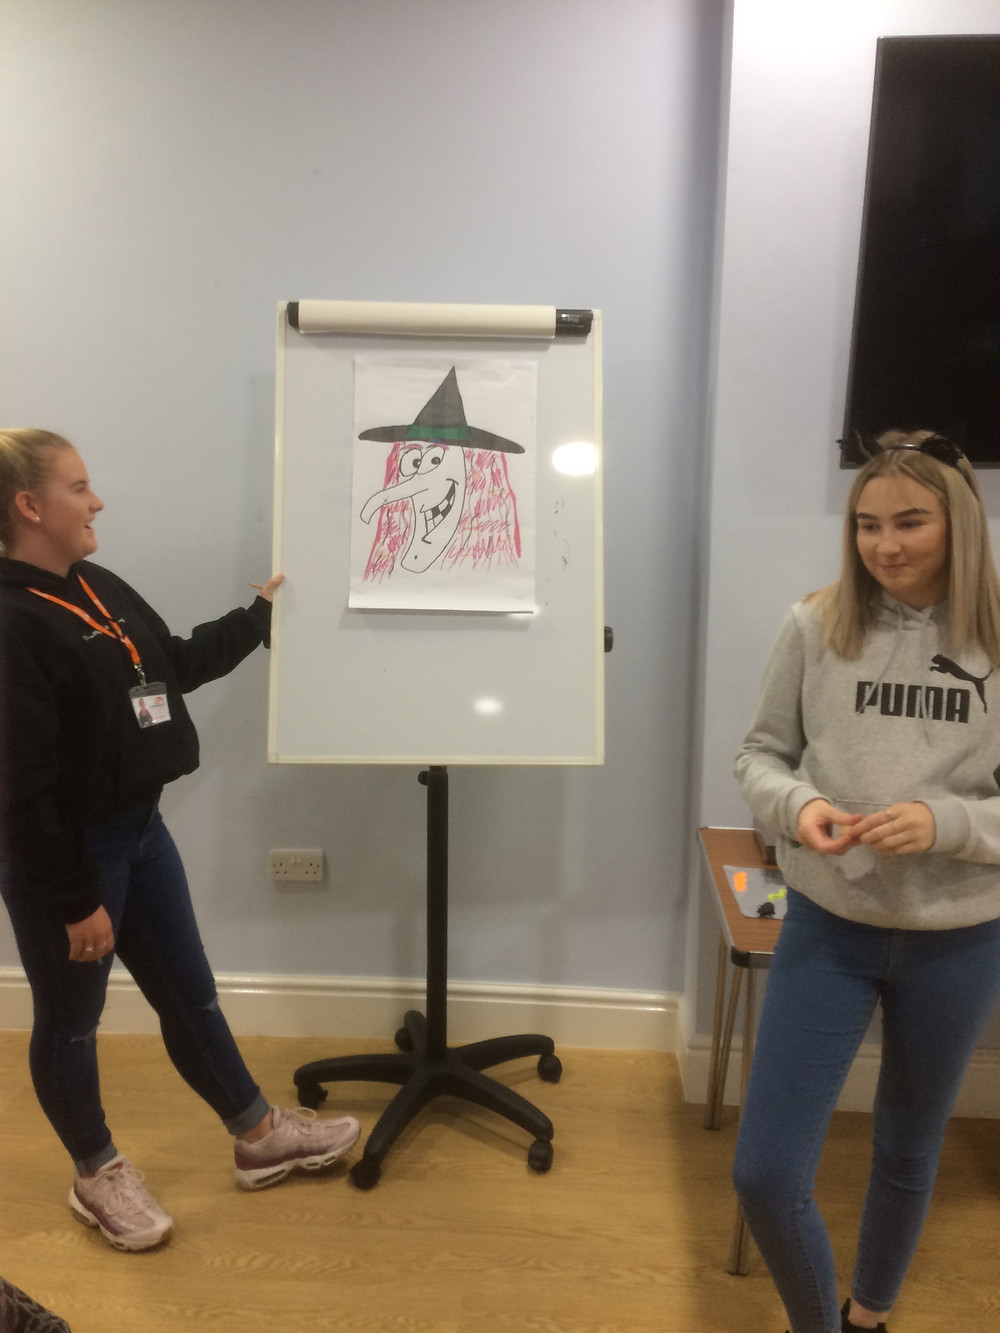 Olivia is stood holding a flip chart which has a drawing of a witch. Rebecca is stood at the other side